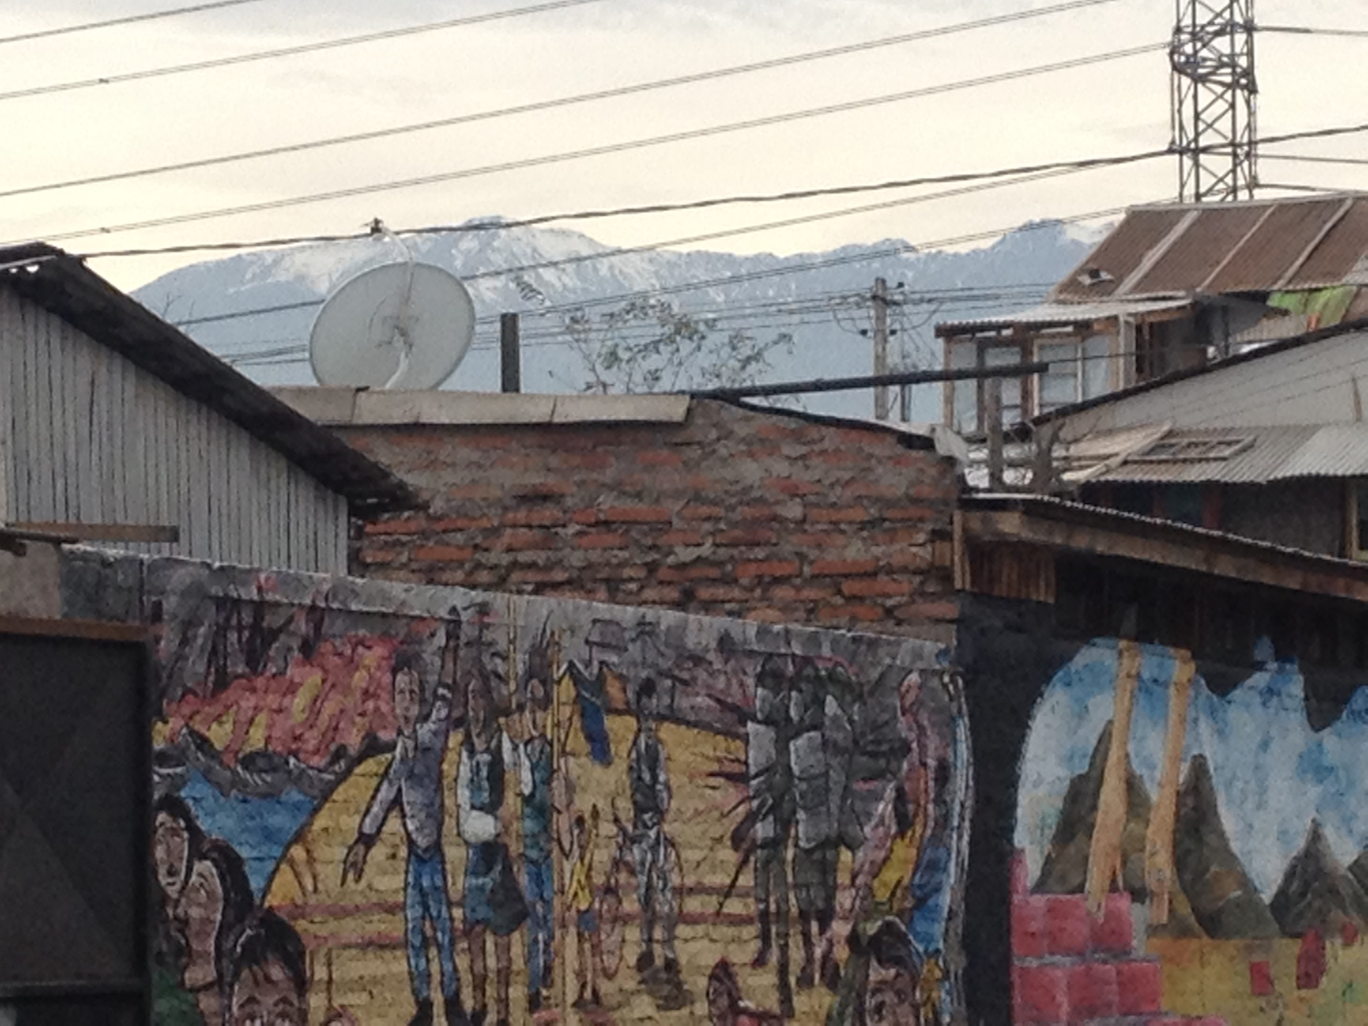 A view of the Andes from the streets of La Victoria.